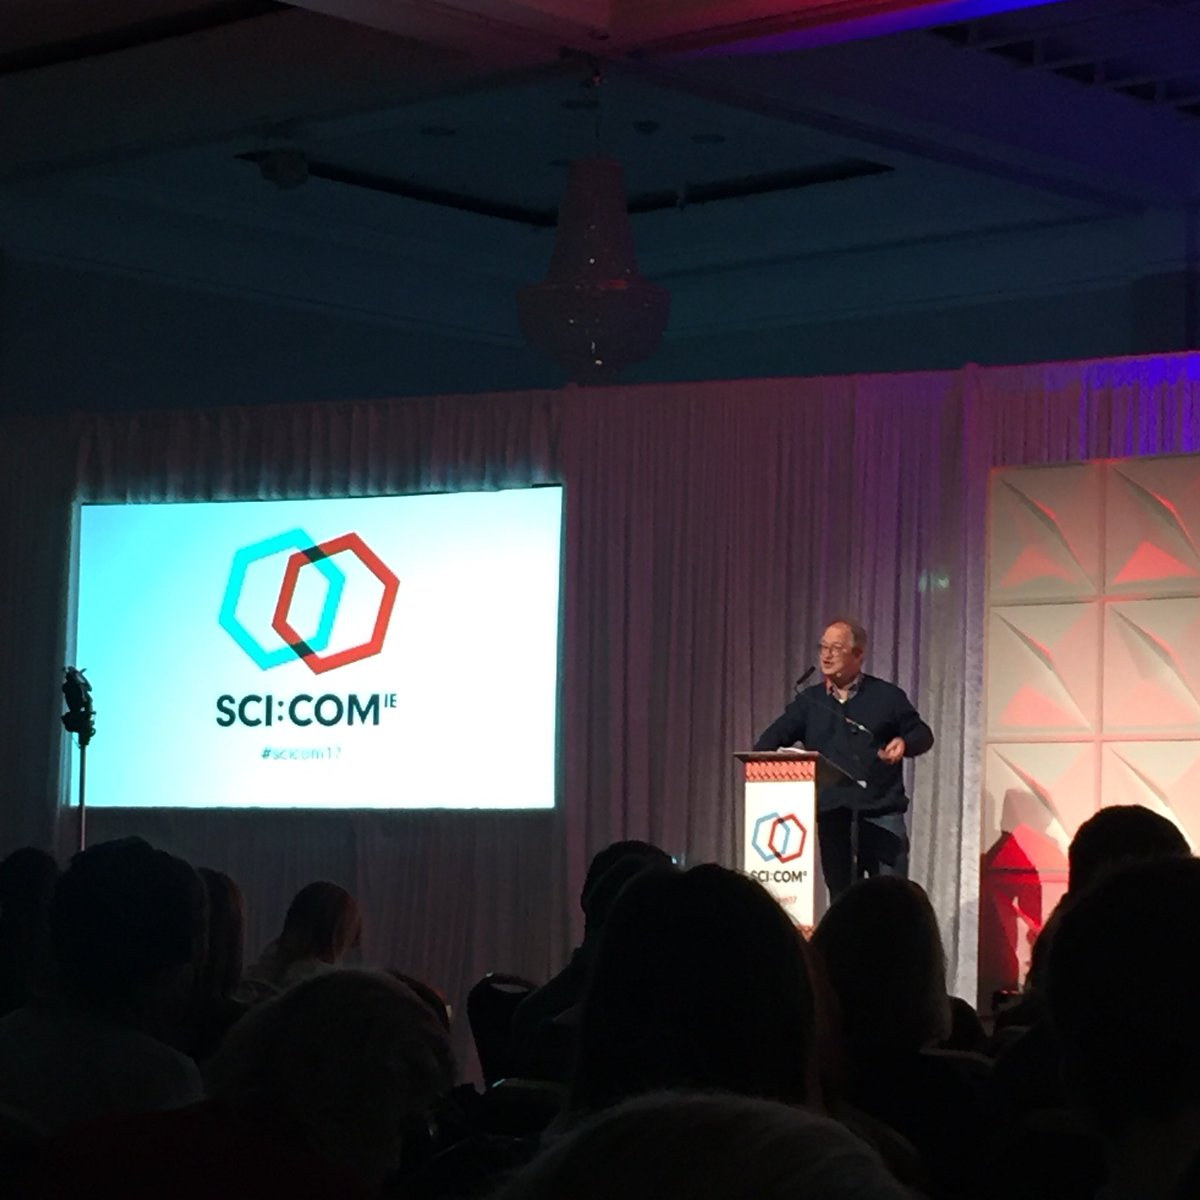 .@robinince kicking off #SCICOM17 by tal...